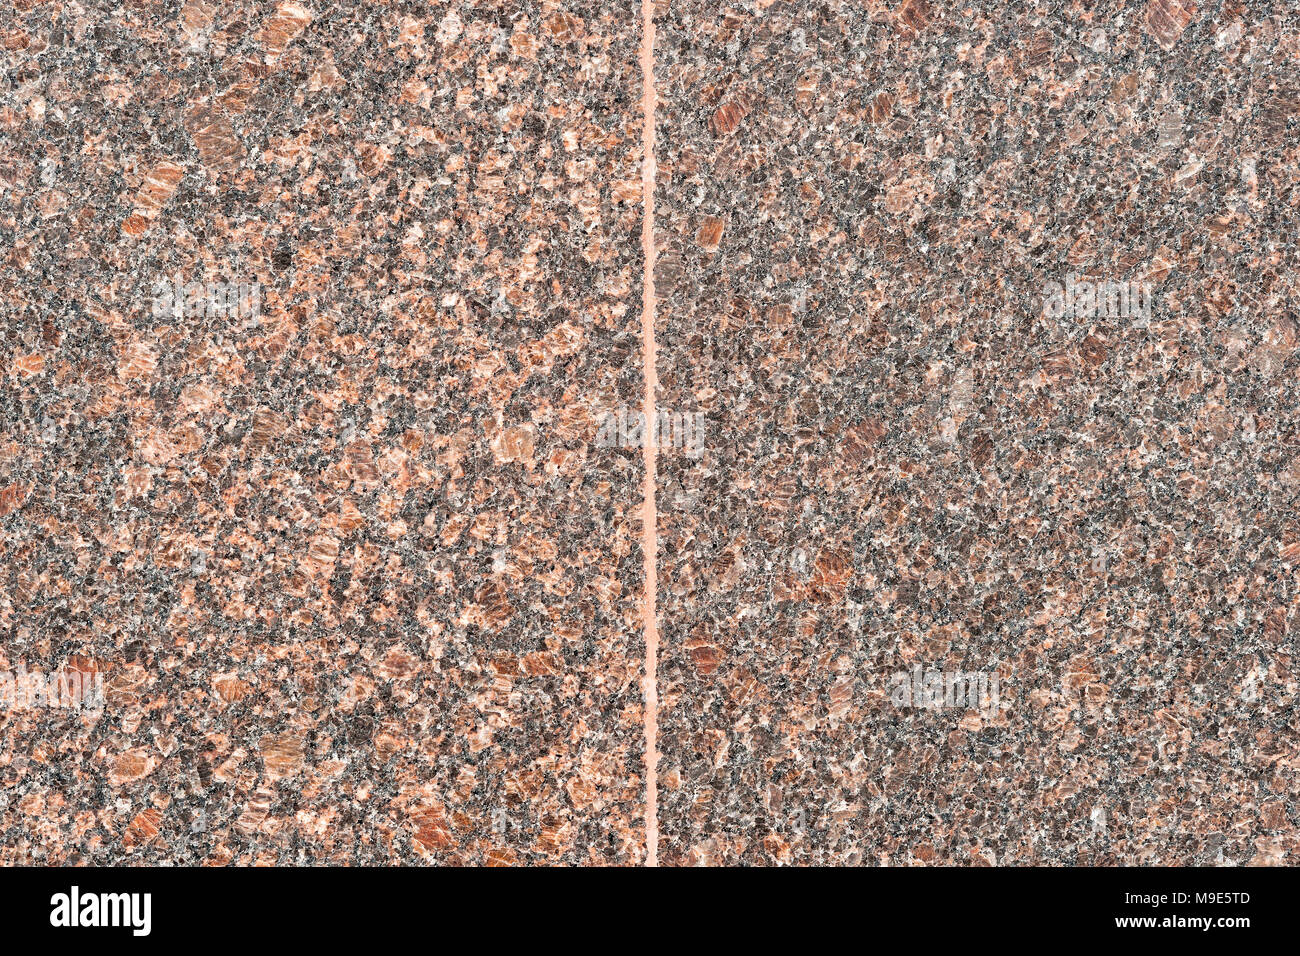 Two smooth granite stone plates of brown color divided by a vertical seam - Stock Image